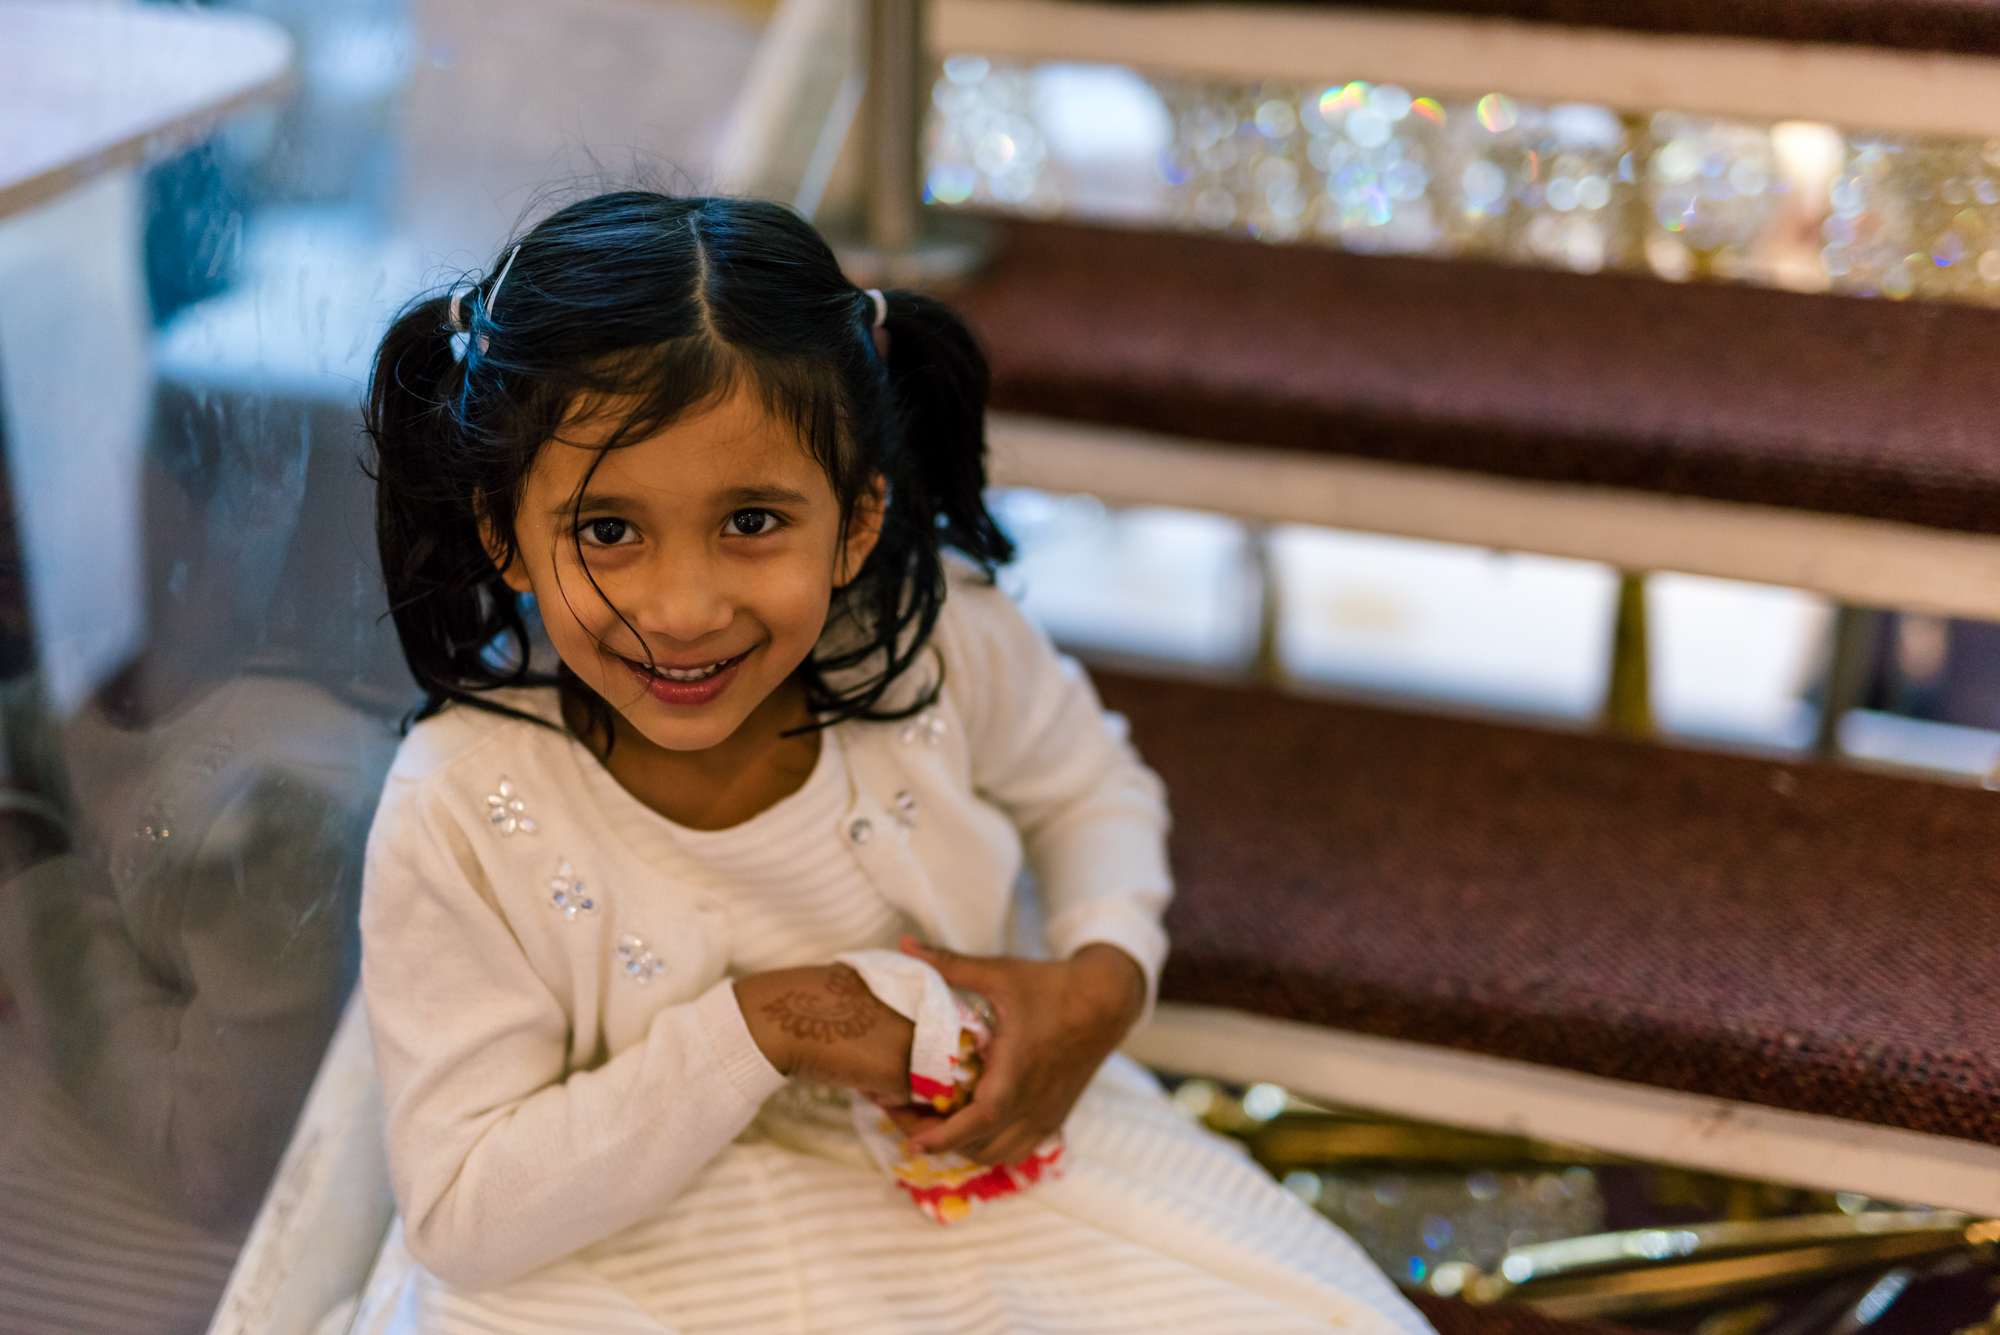 a young girl wedding guest smiles at the camera